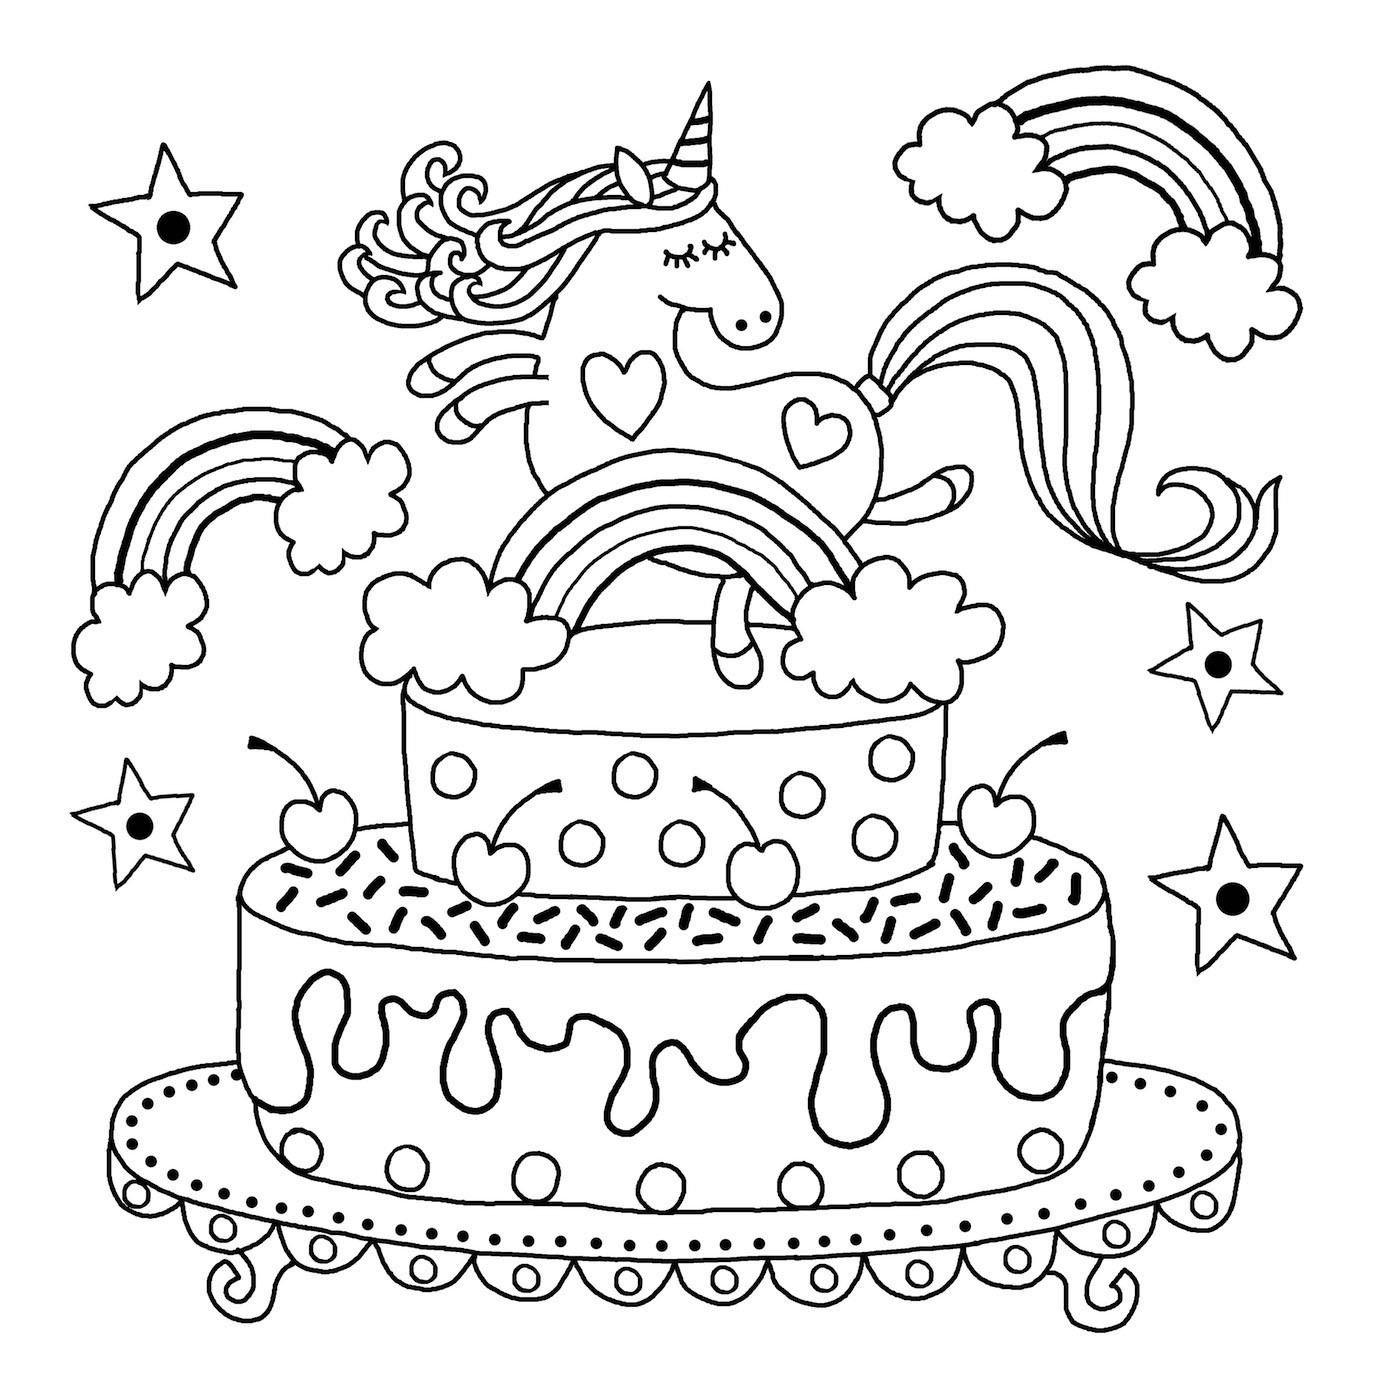 Unicorn Coloring Pages For Kids  Downloadable unicorn colouring page Michael O Mara Books